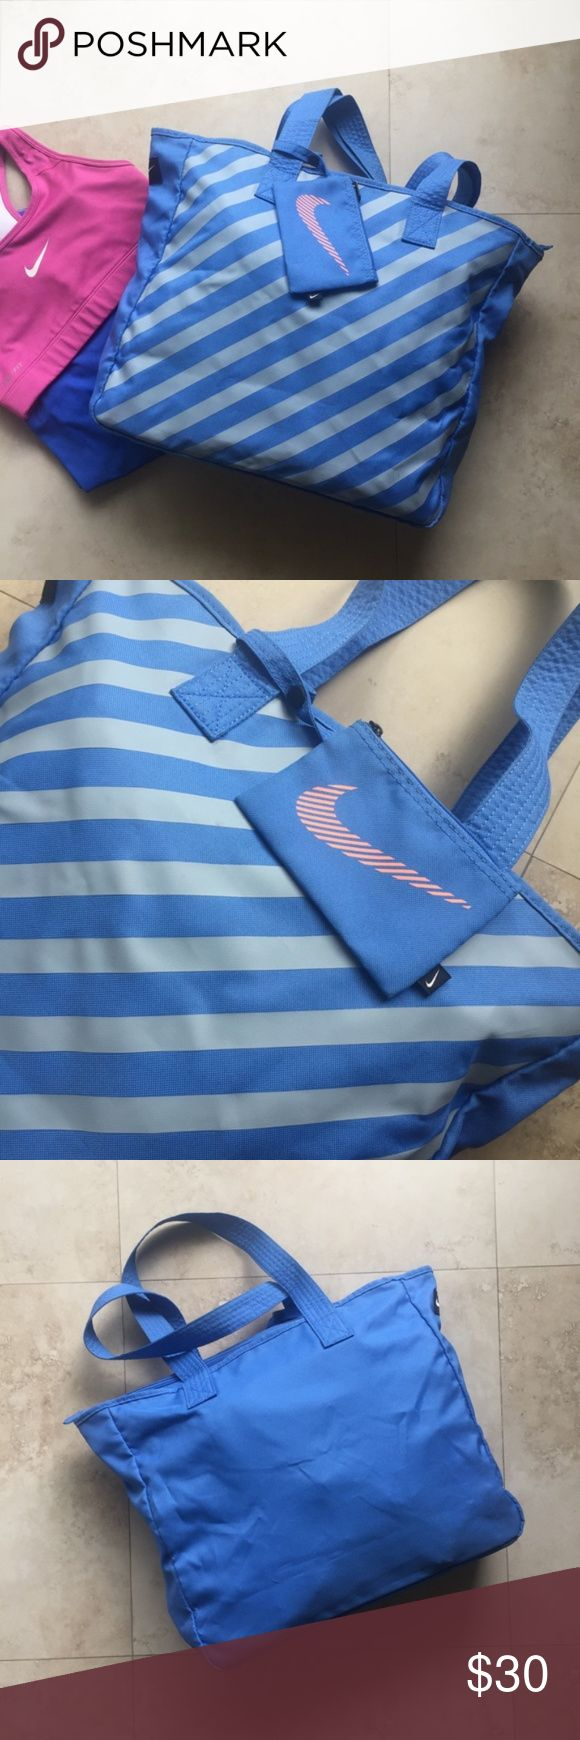 NIKE Tote Bag Dual grip handle for easy transport. Easy access in main compartment for spacious storage. Detachable zip pocket for smaller items LPD170905 Nike Bags Totes